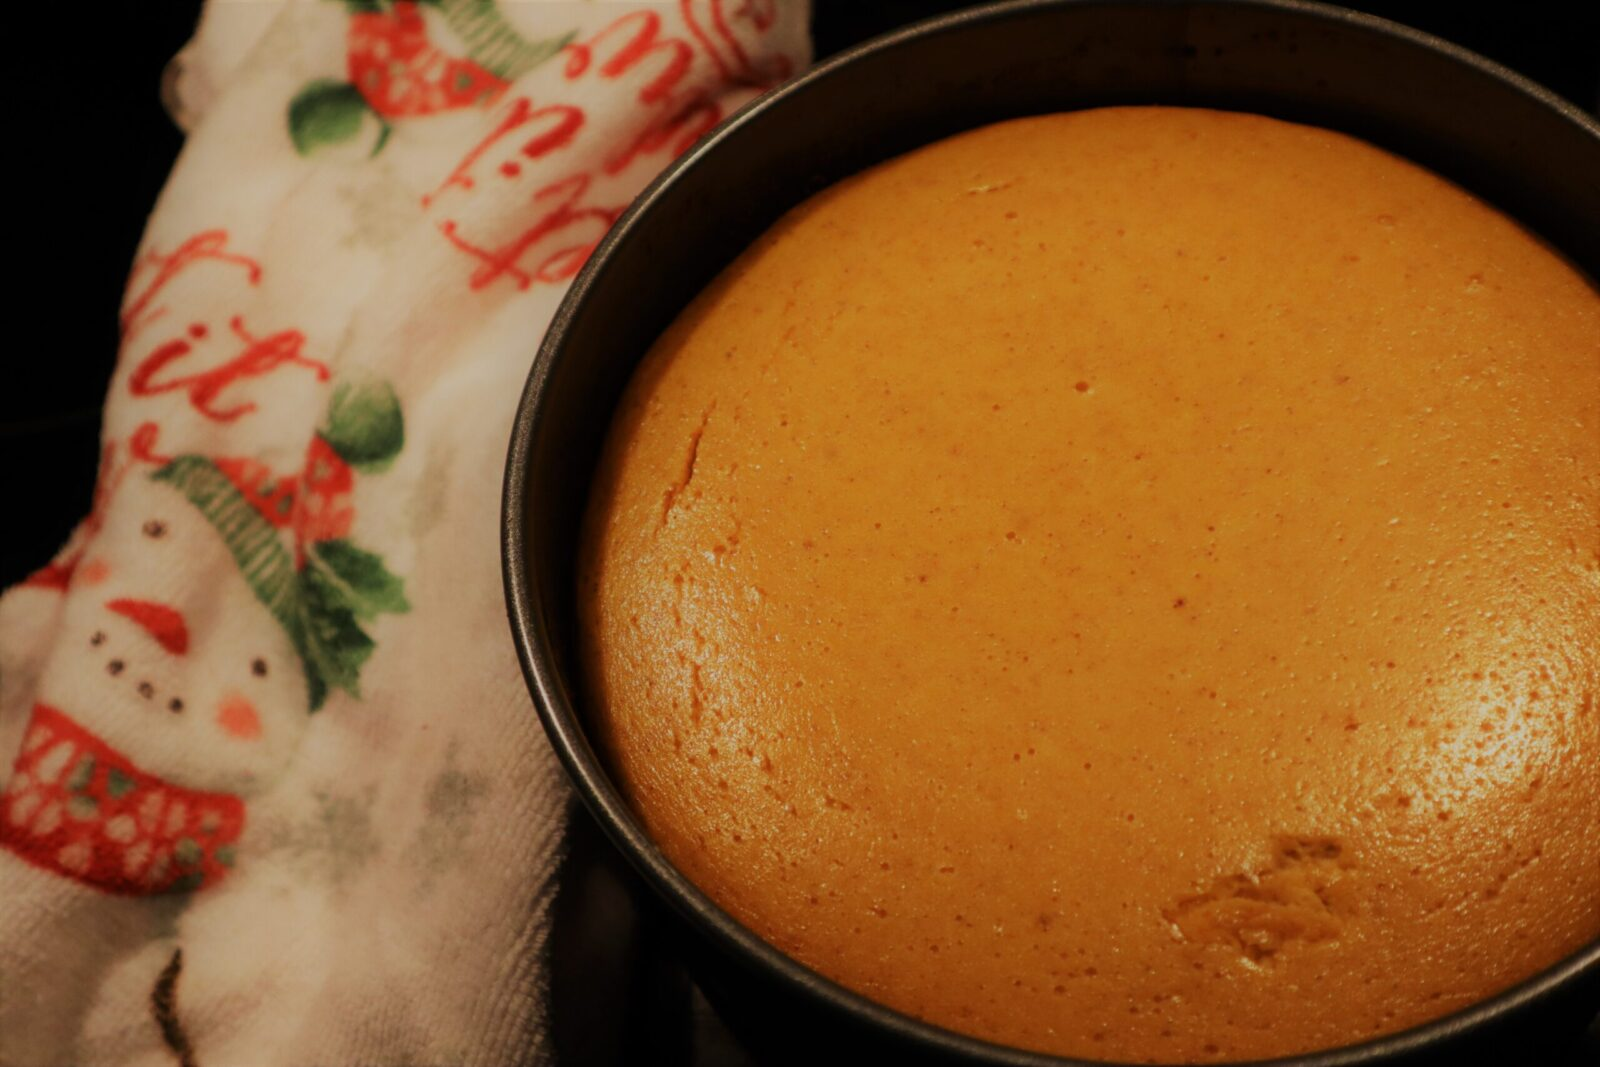 Pumpkin cheesecake in a springform pan next to a Christmas towel